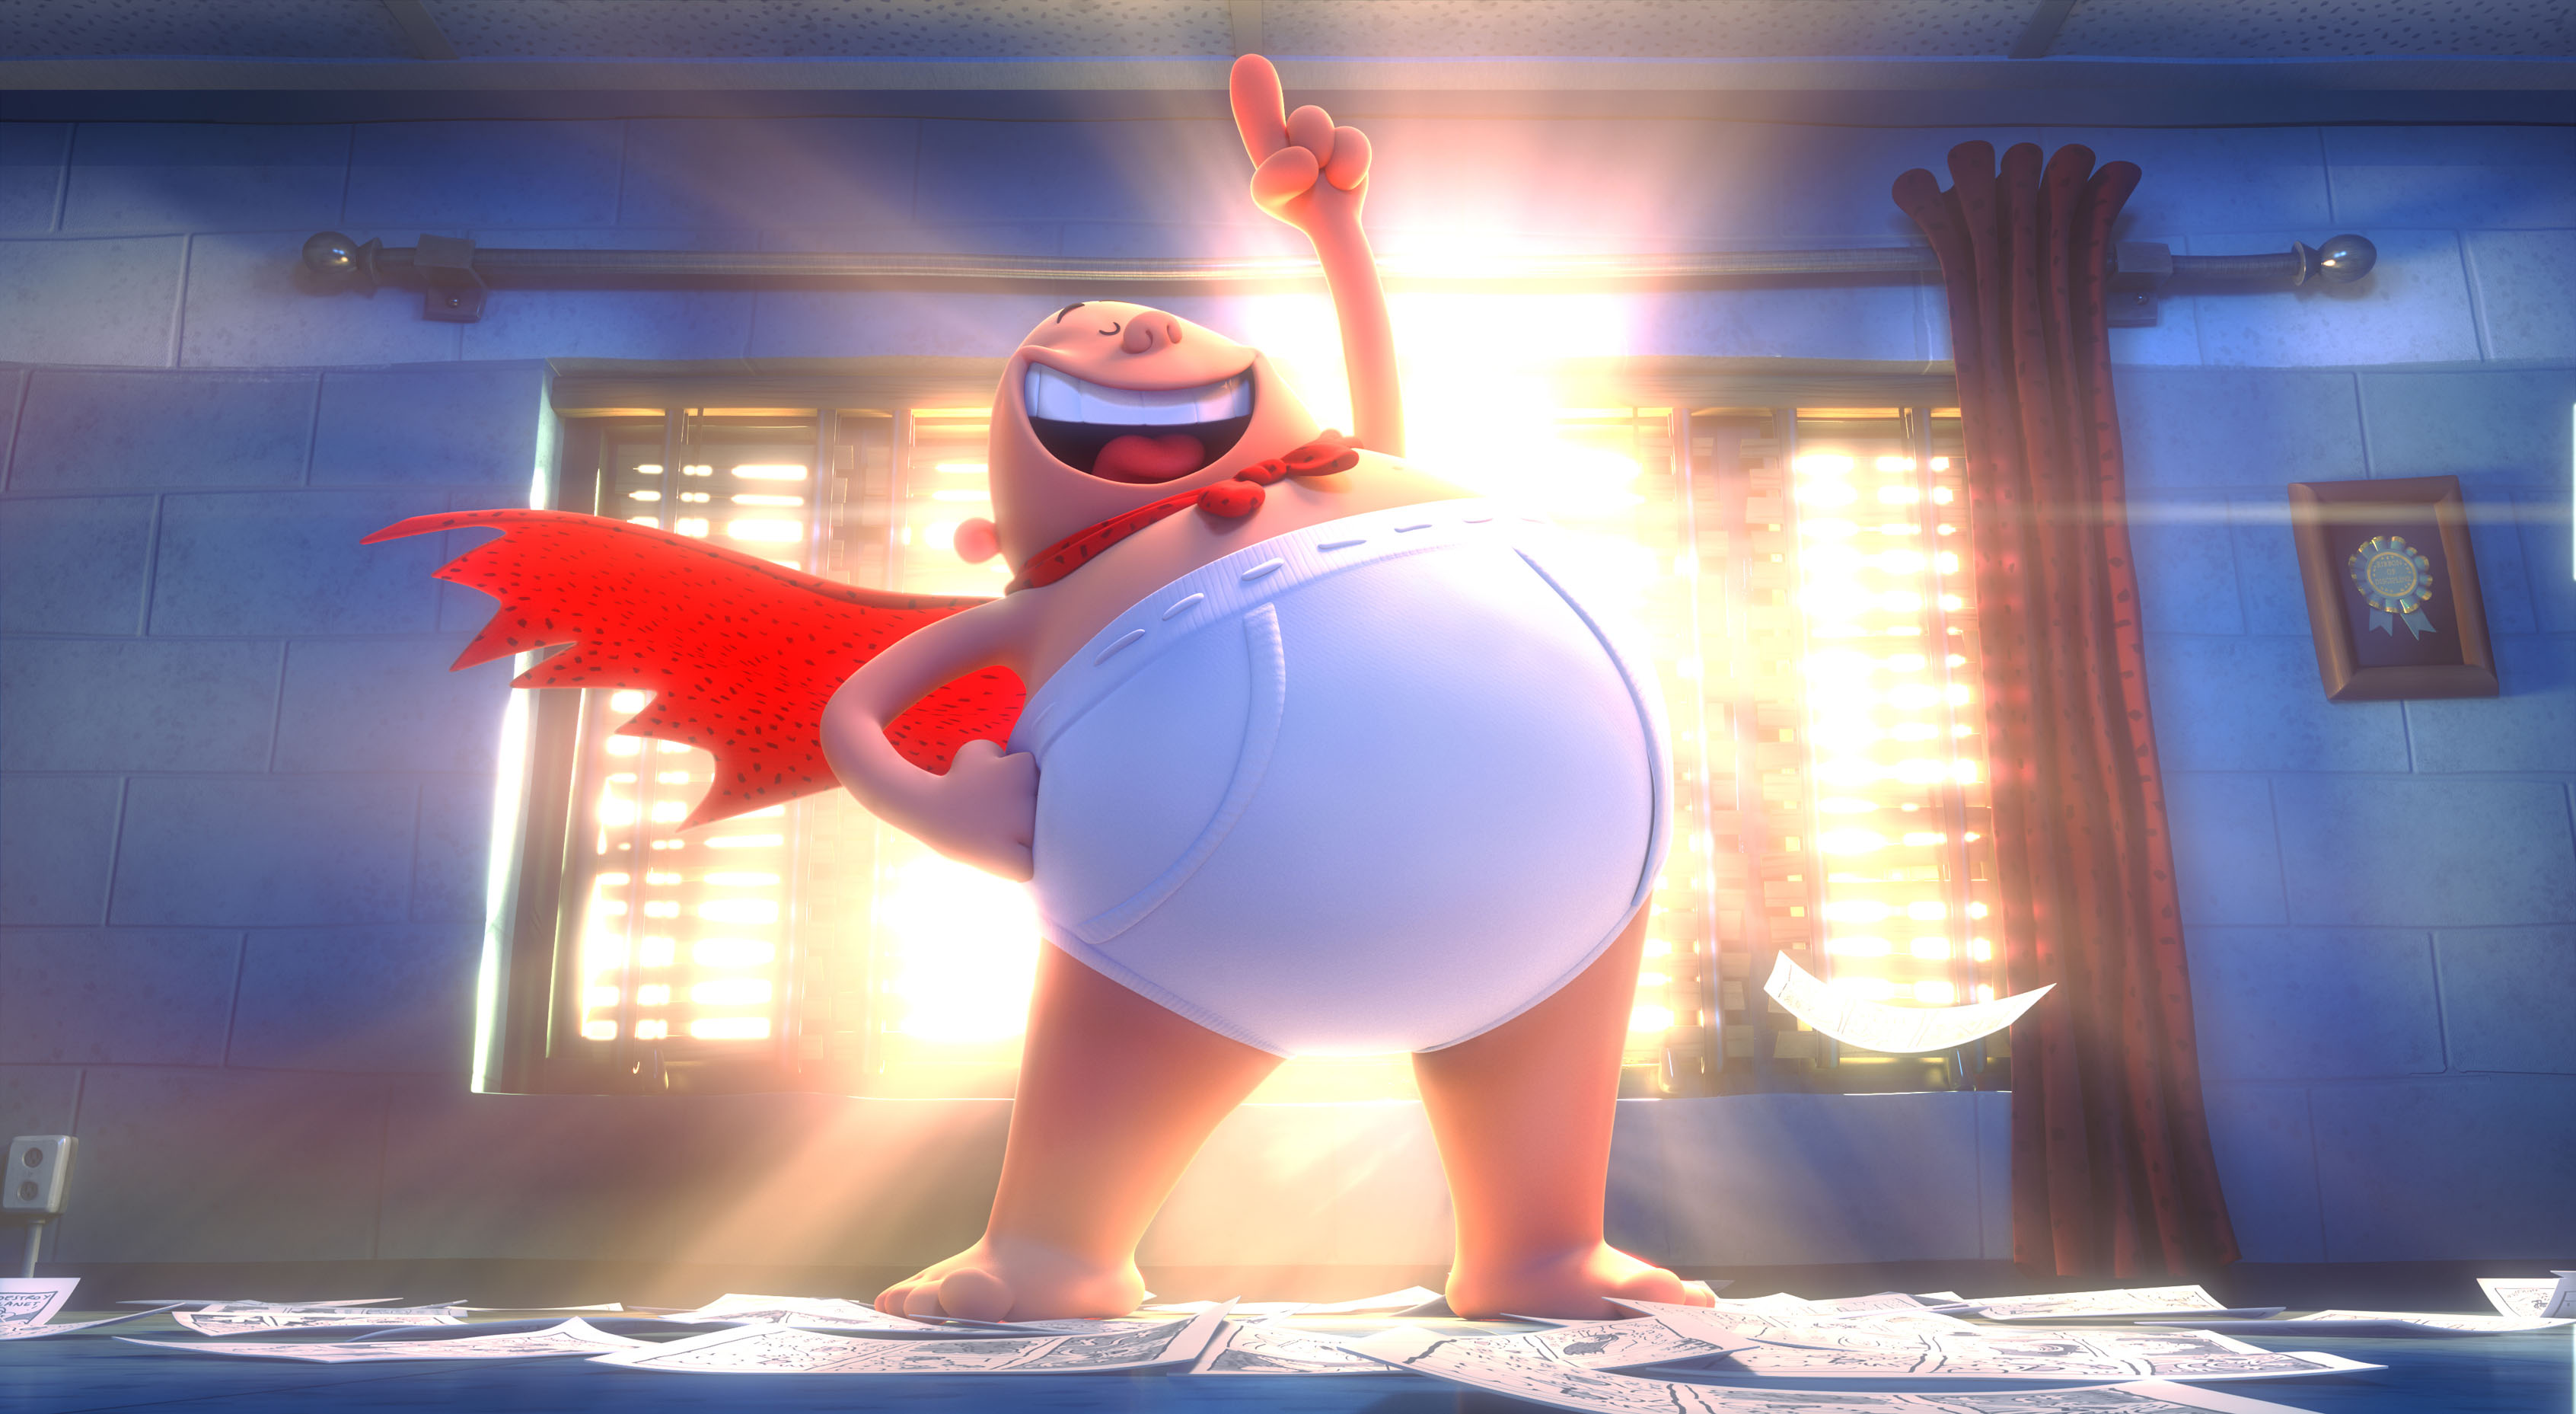 captain underpants animated movie hd movies 4k wallpapers images backgrounds photos and. Black Bedroom Furniture Sets. Home Design Ideas